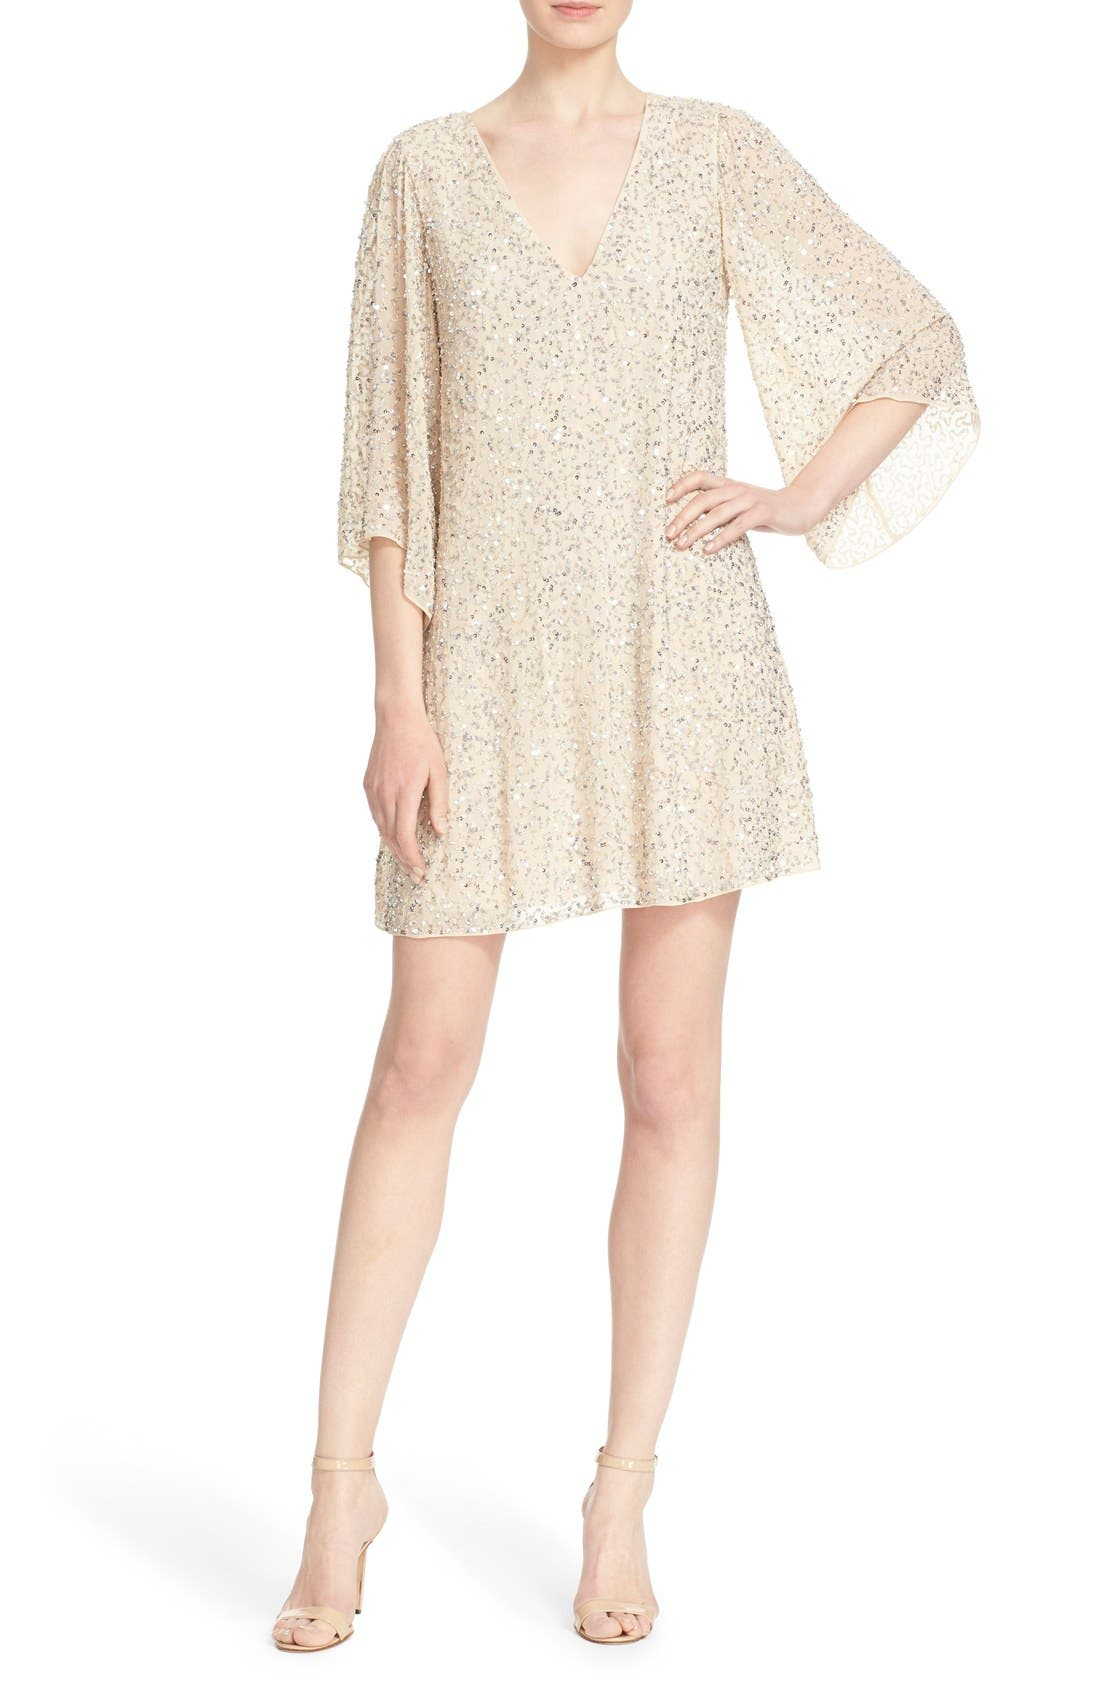 Alternate Image 1 Selected - Alice + Olivia 'Shary' Sequin Shift Dress